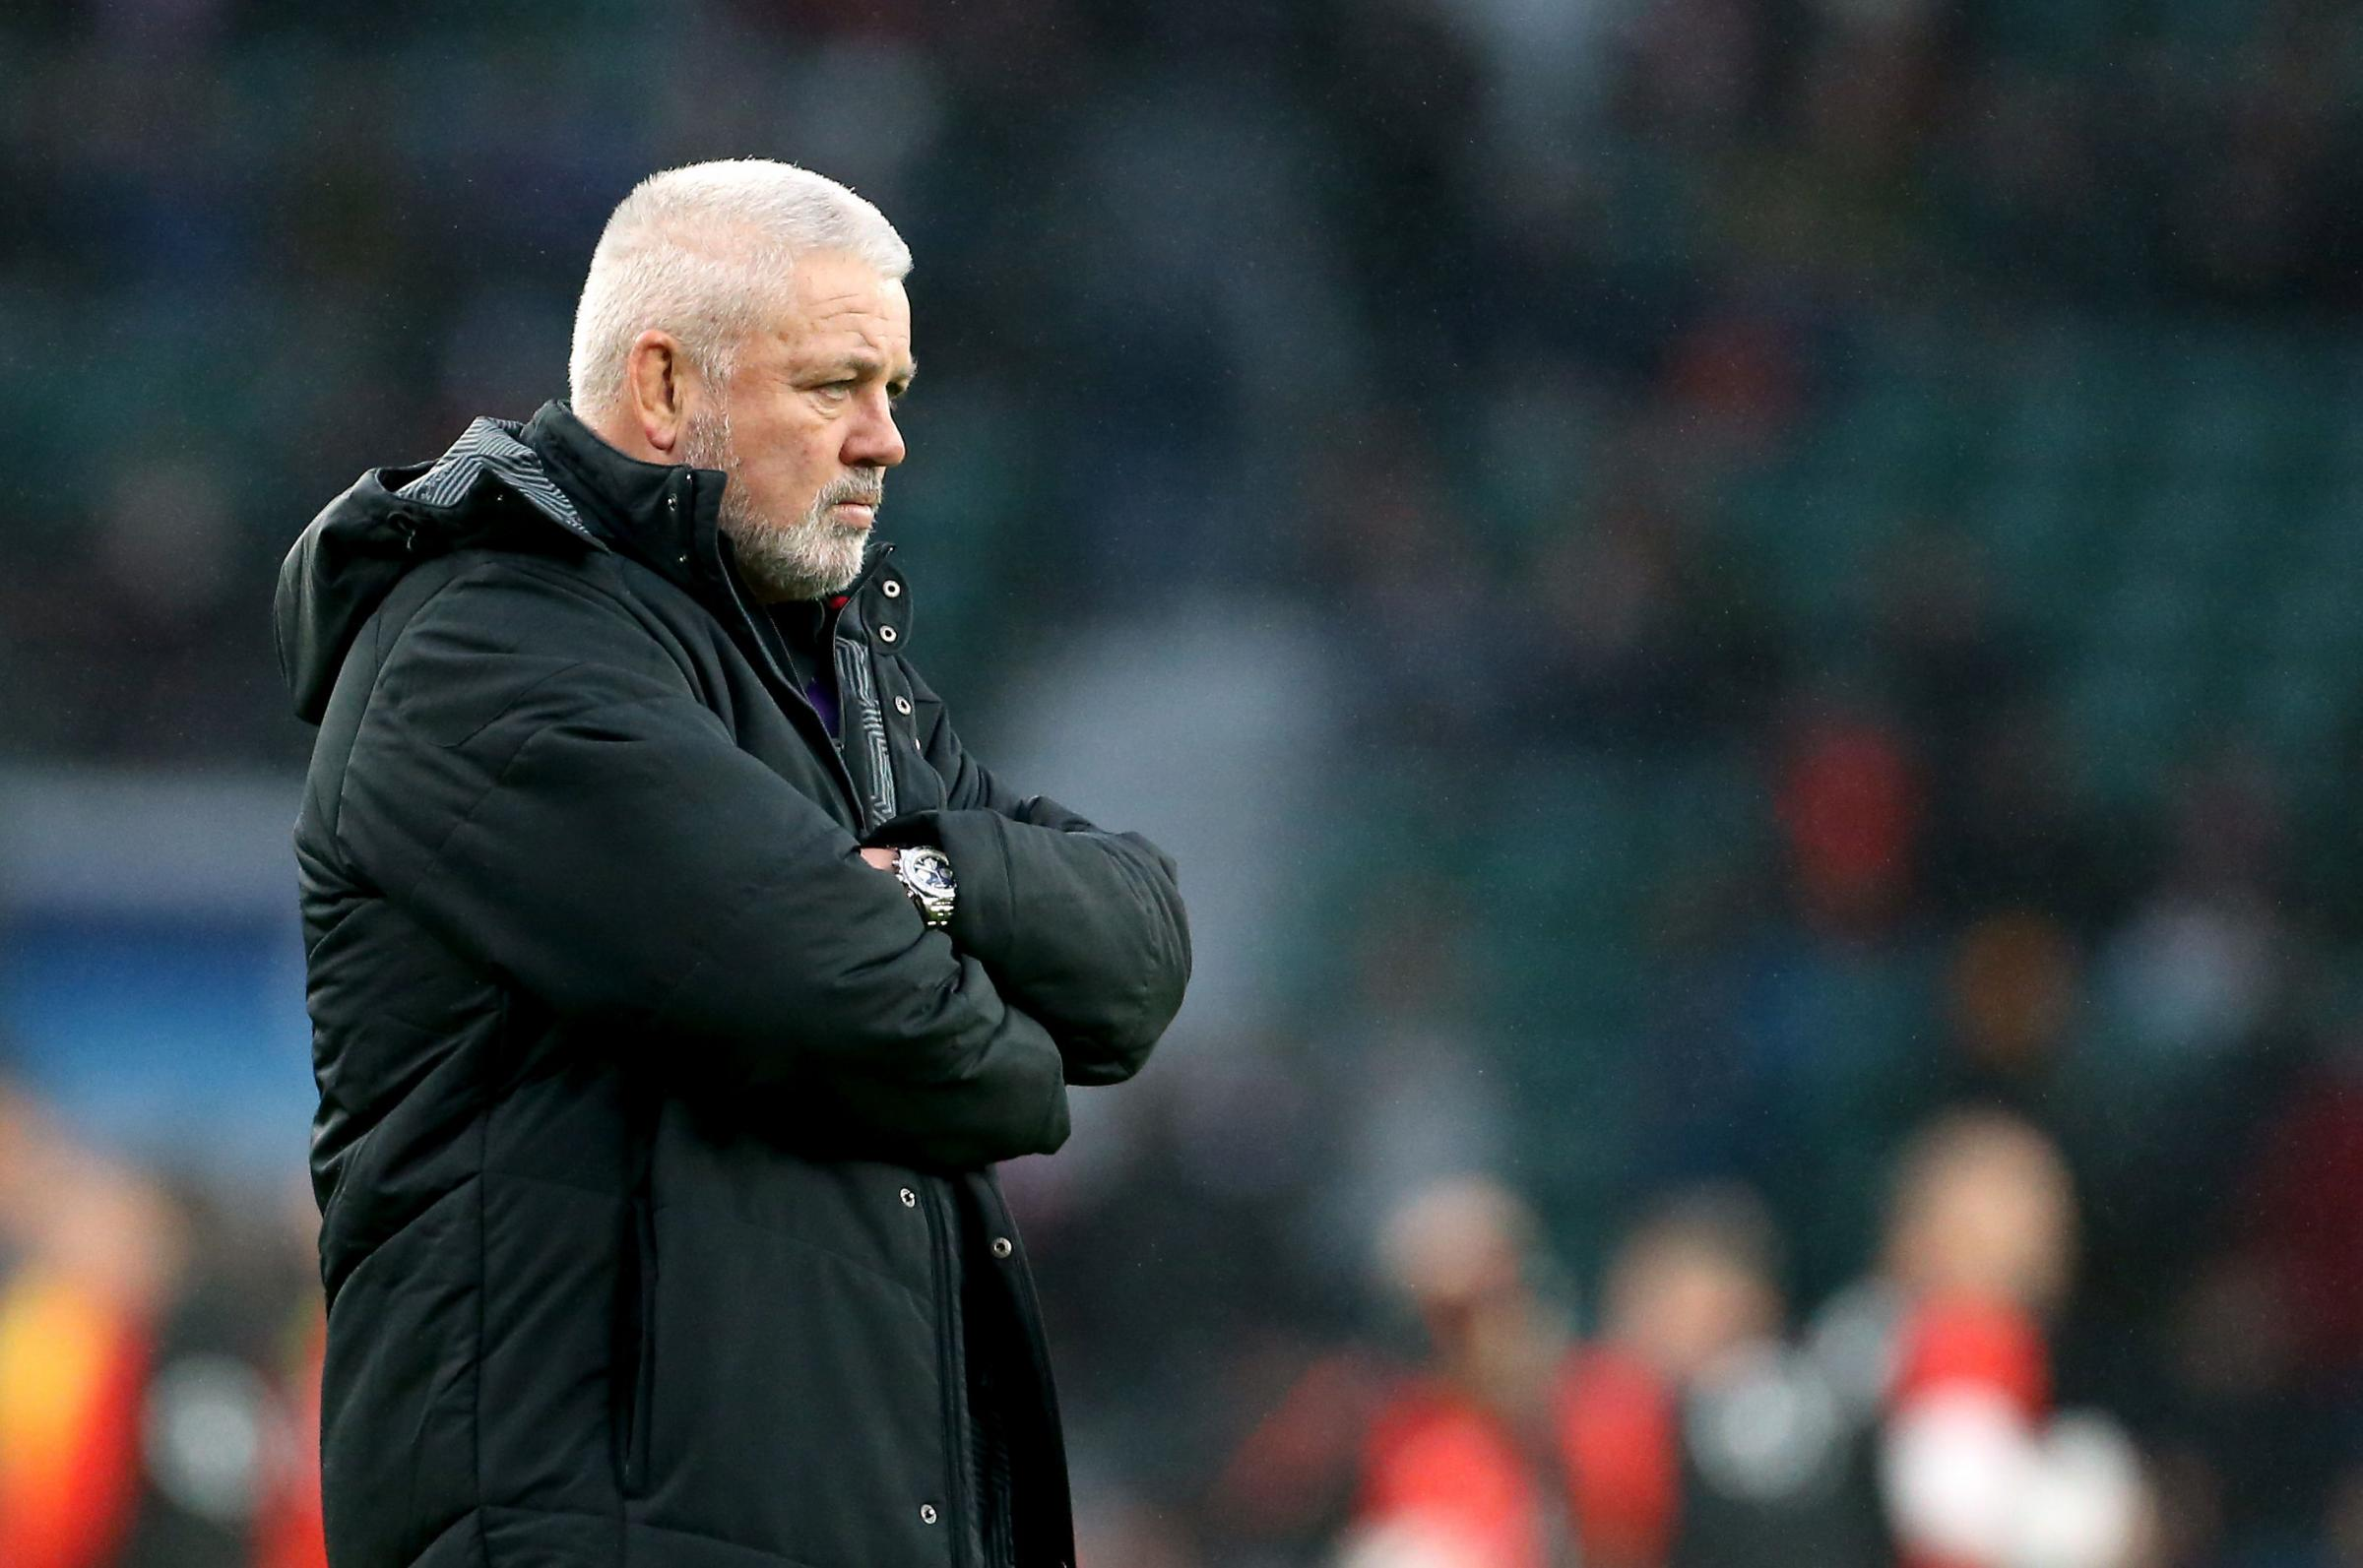 Wales boss Gatland: TMO made a terrible mistake